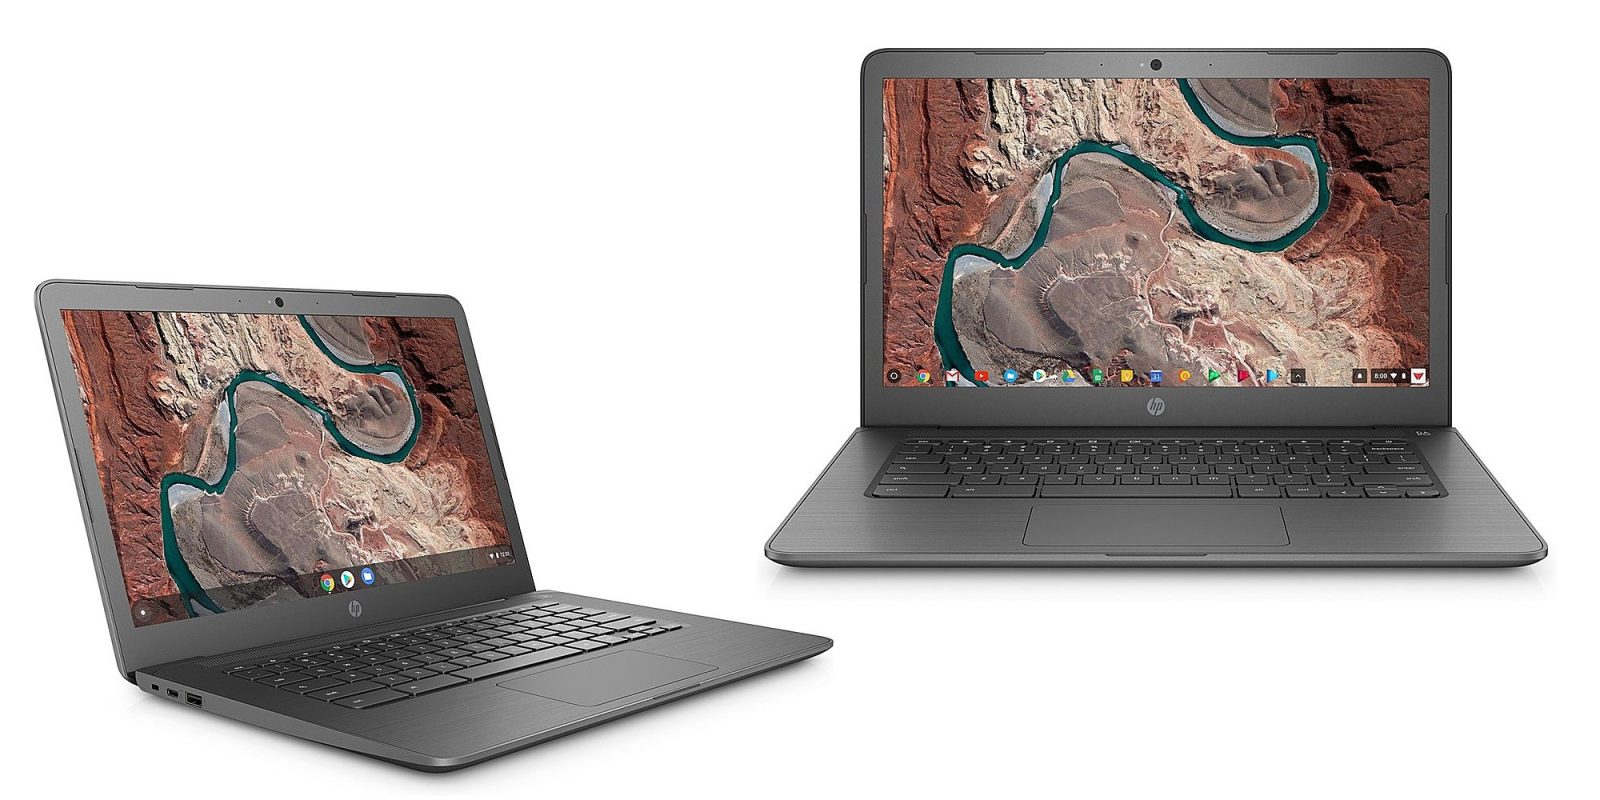 HP's touchscreen Chromebook 14 returns to Prime Day pricing at $330 shipped | 9to5Toys